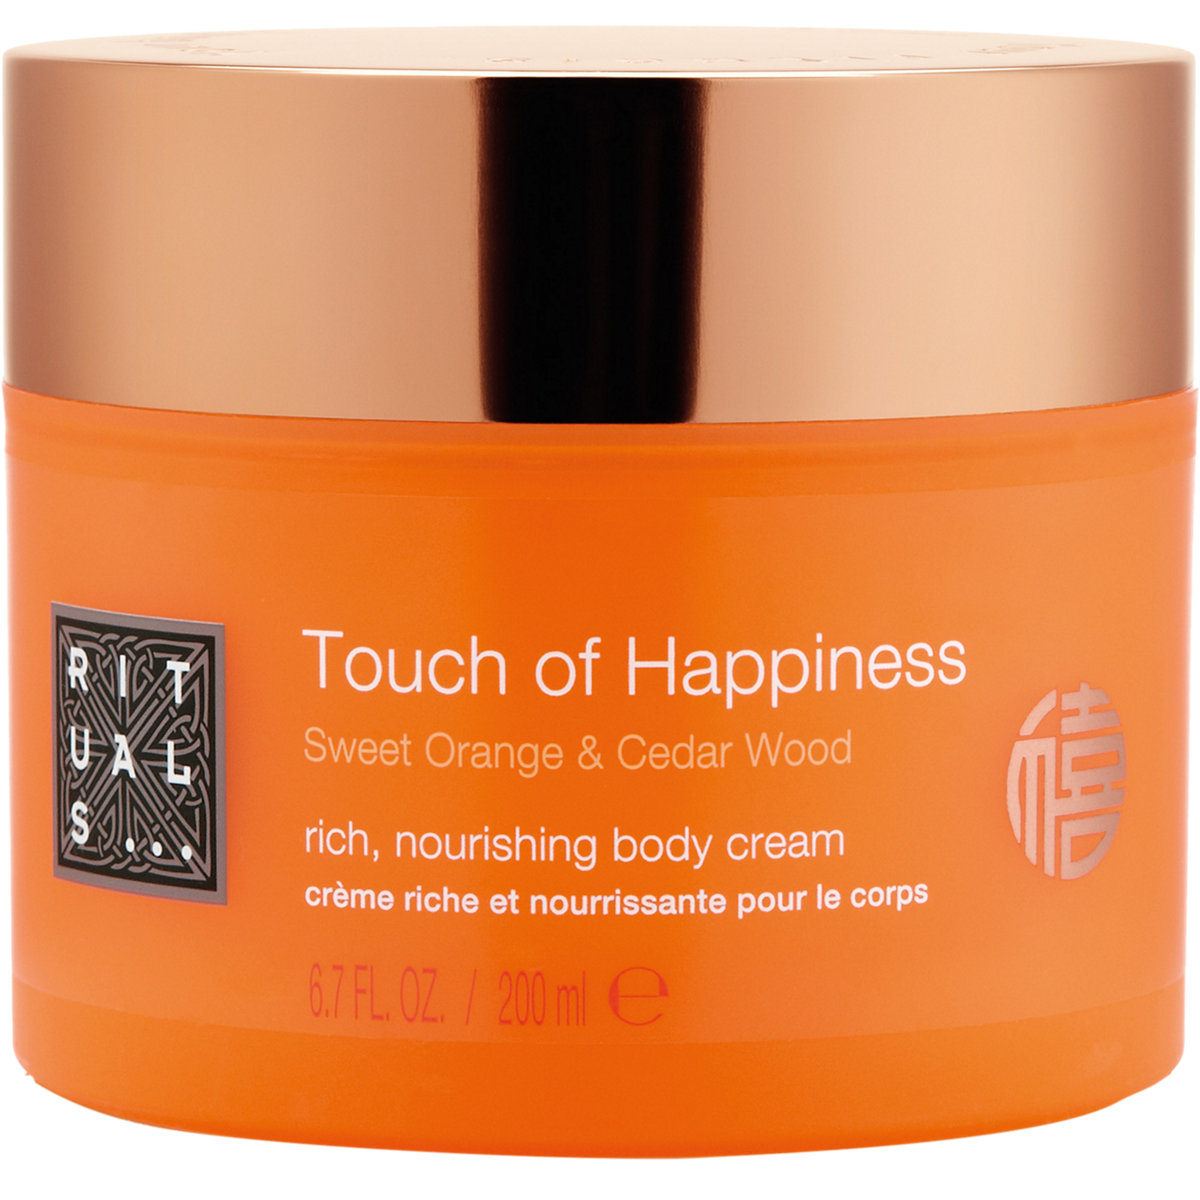 Rituals Touch of Happiness Whipped Body Cream at Barneys.com